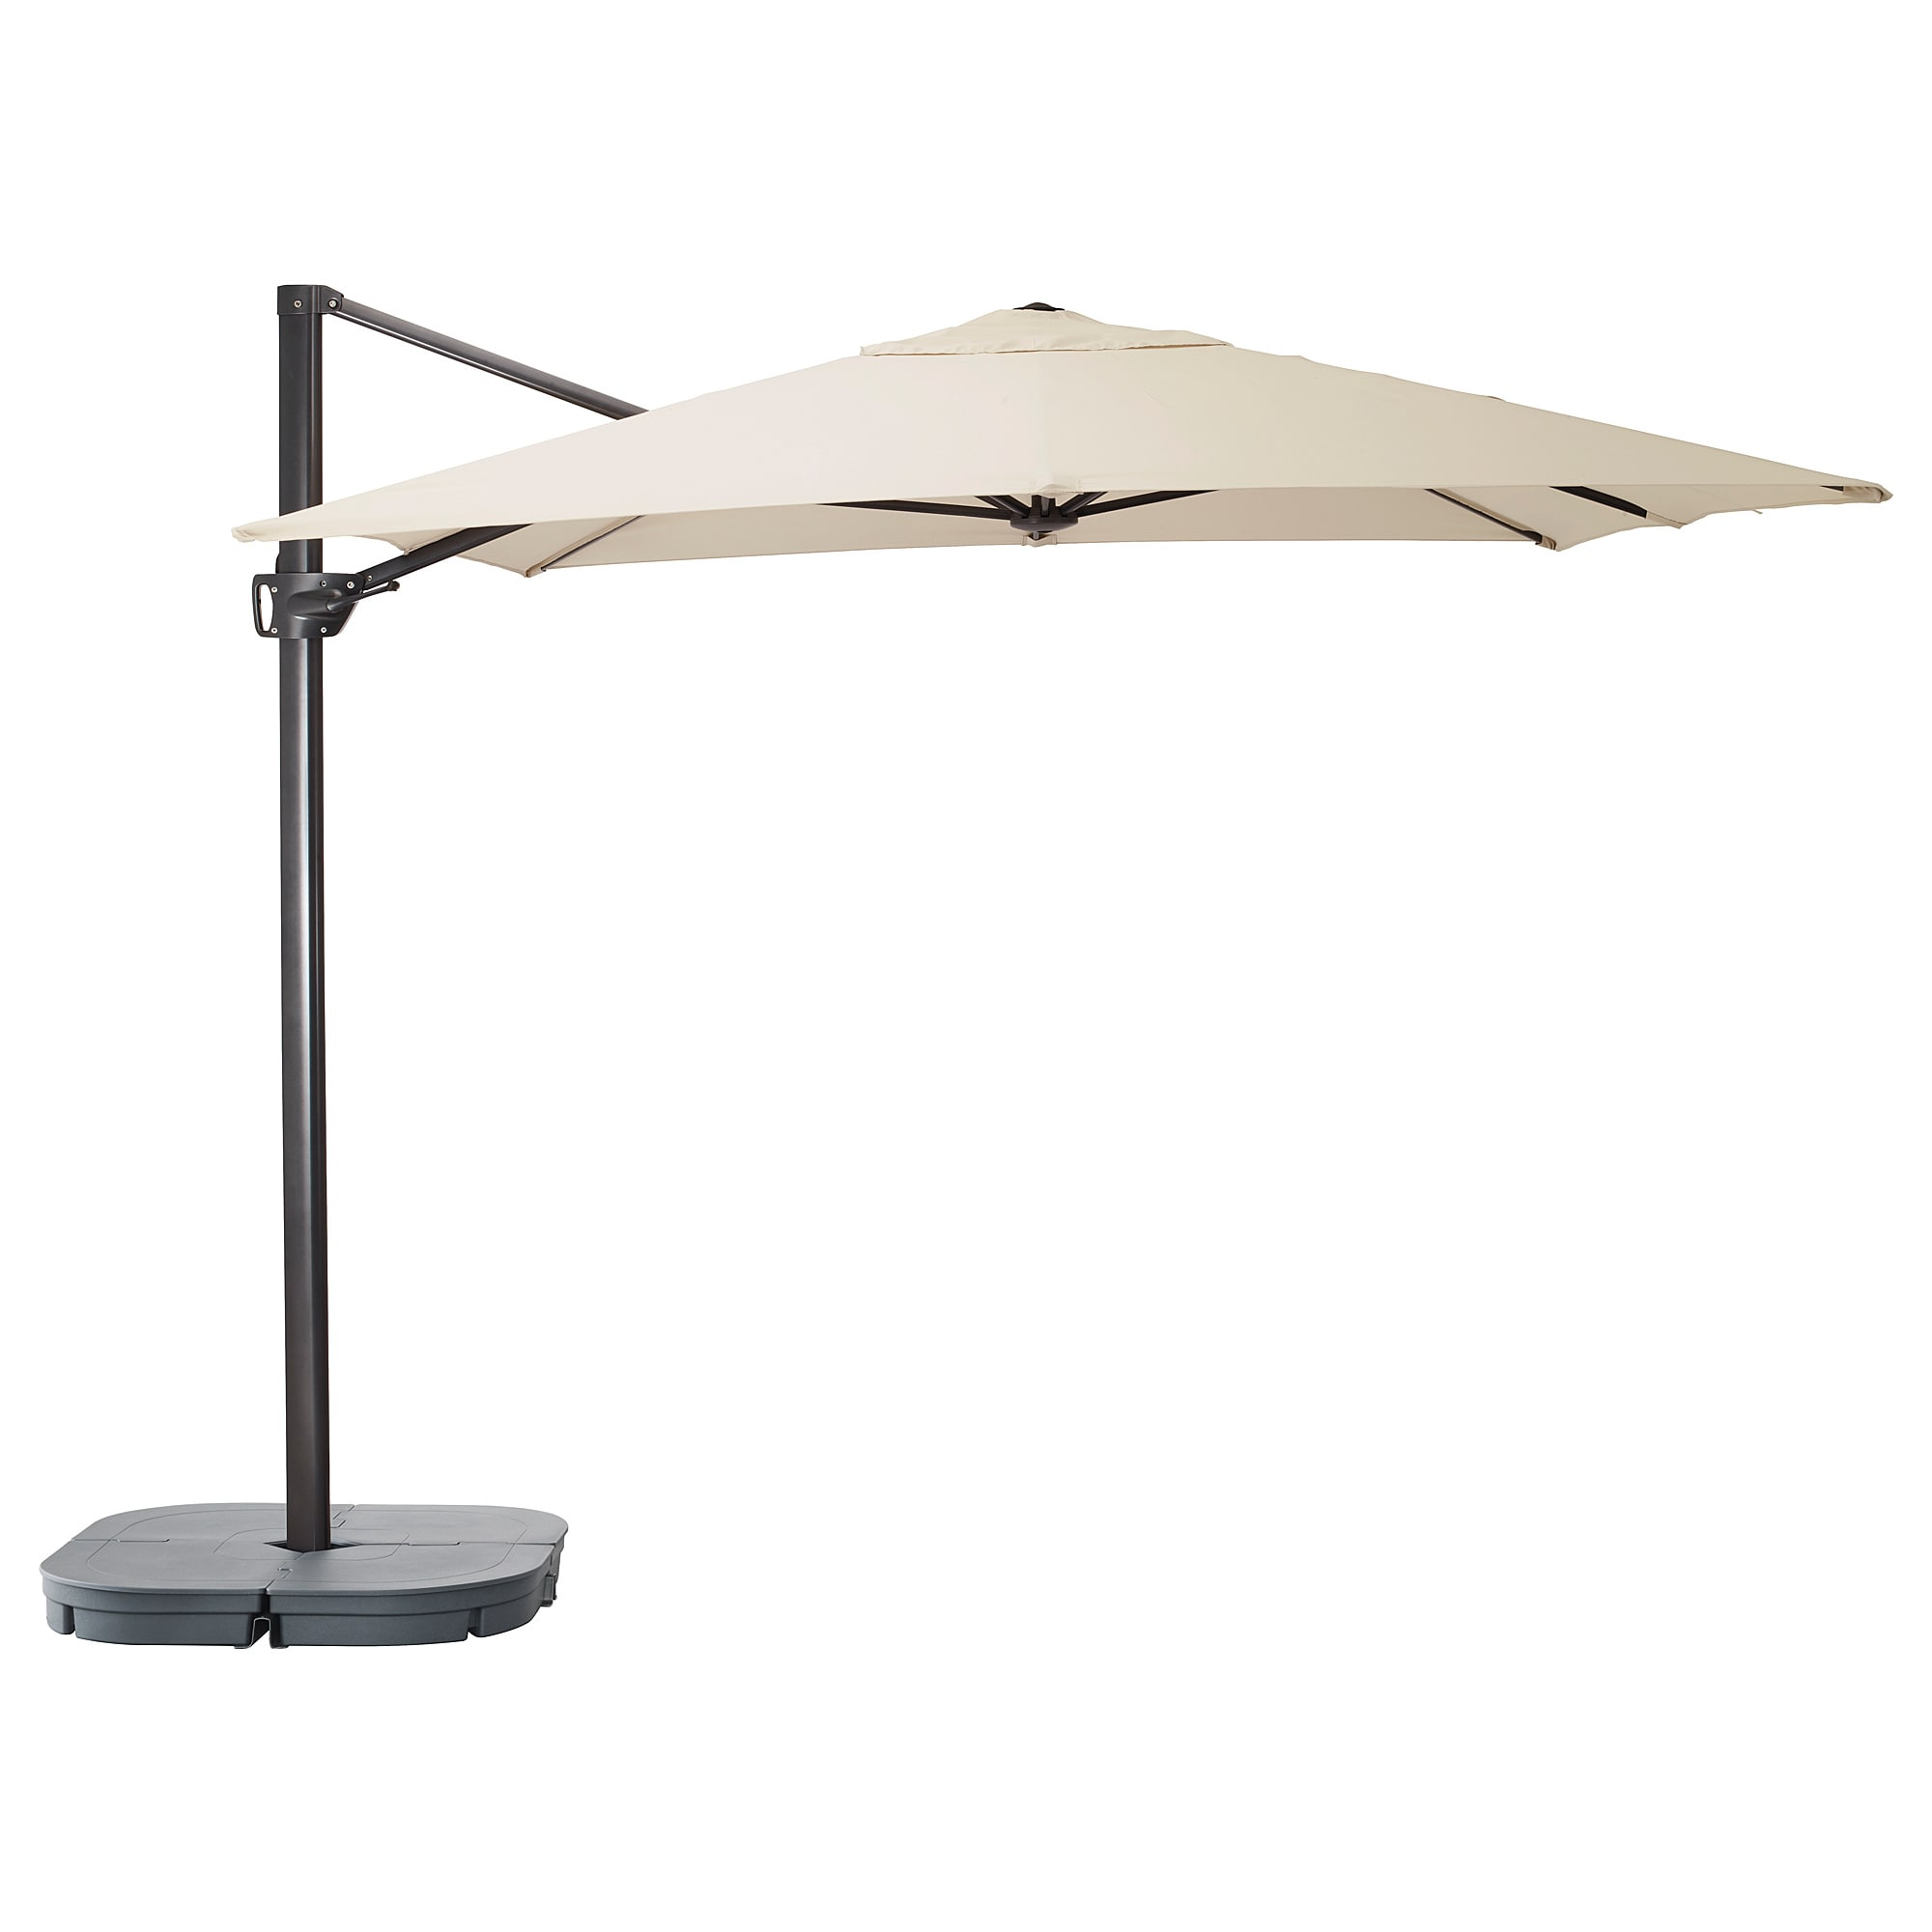 Seglaro Svarto Hanging Umbrella With Base Tilting Beige Dark Gray Ikea Patio Umbrellas Patio Umbrella Offset Patio Umbrella